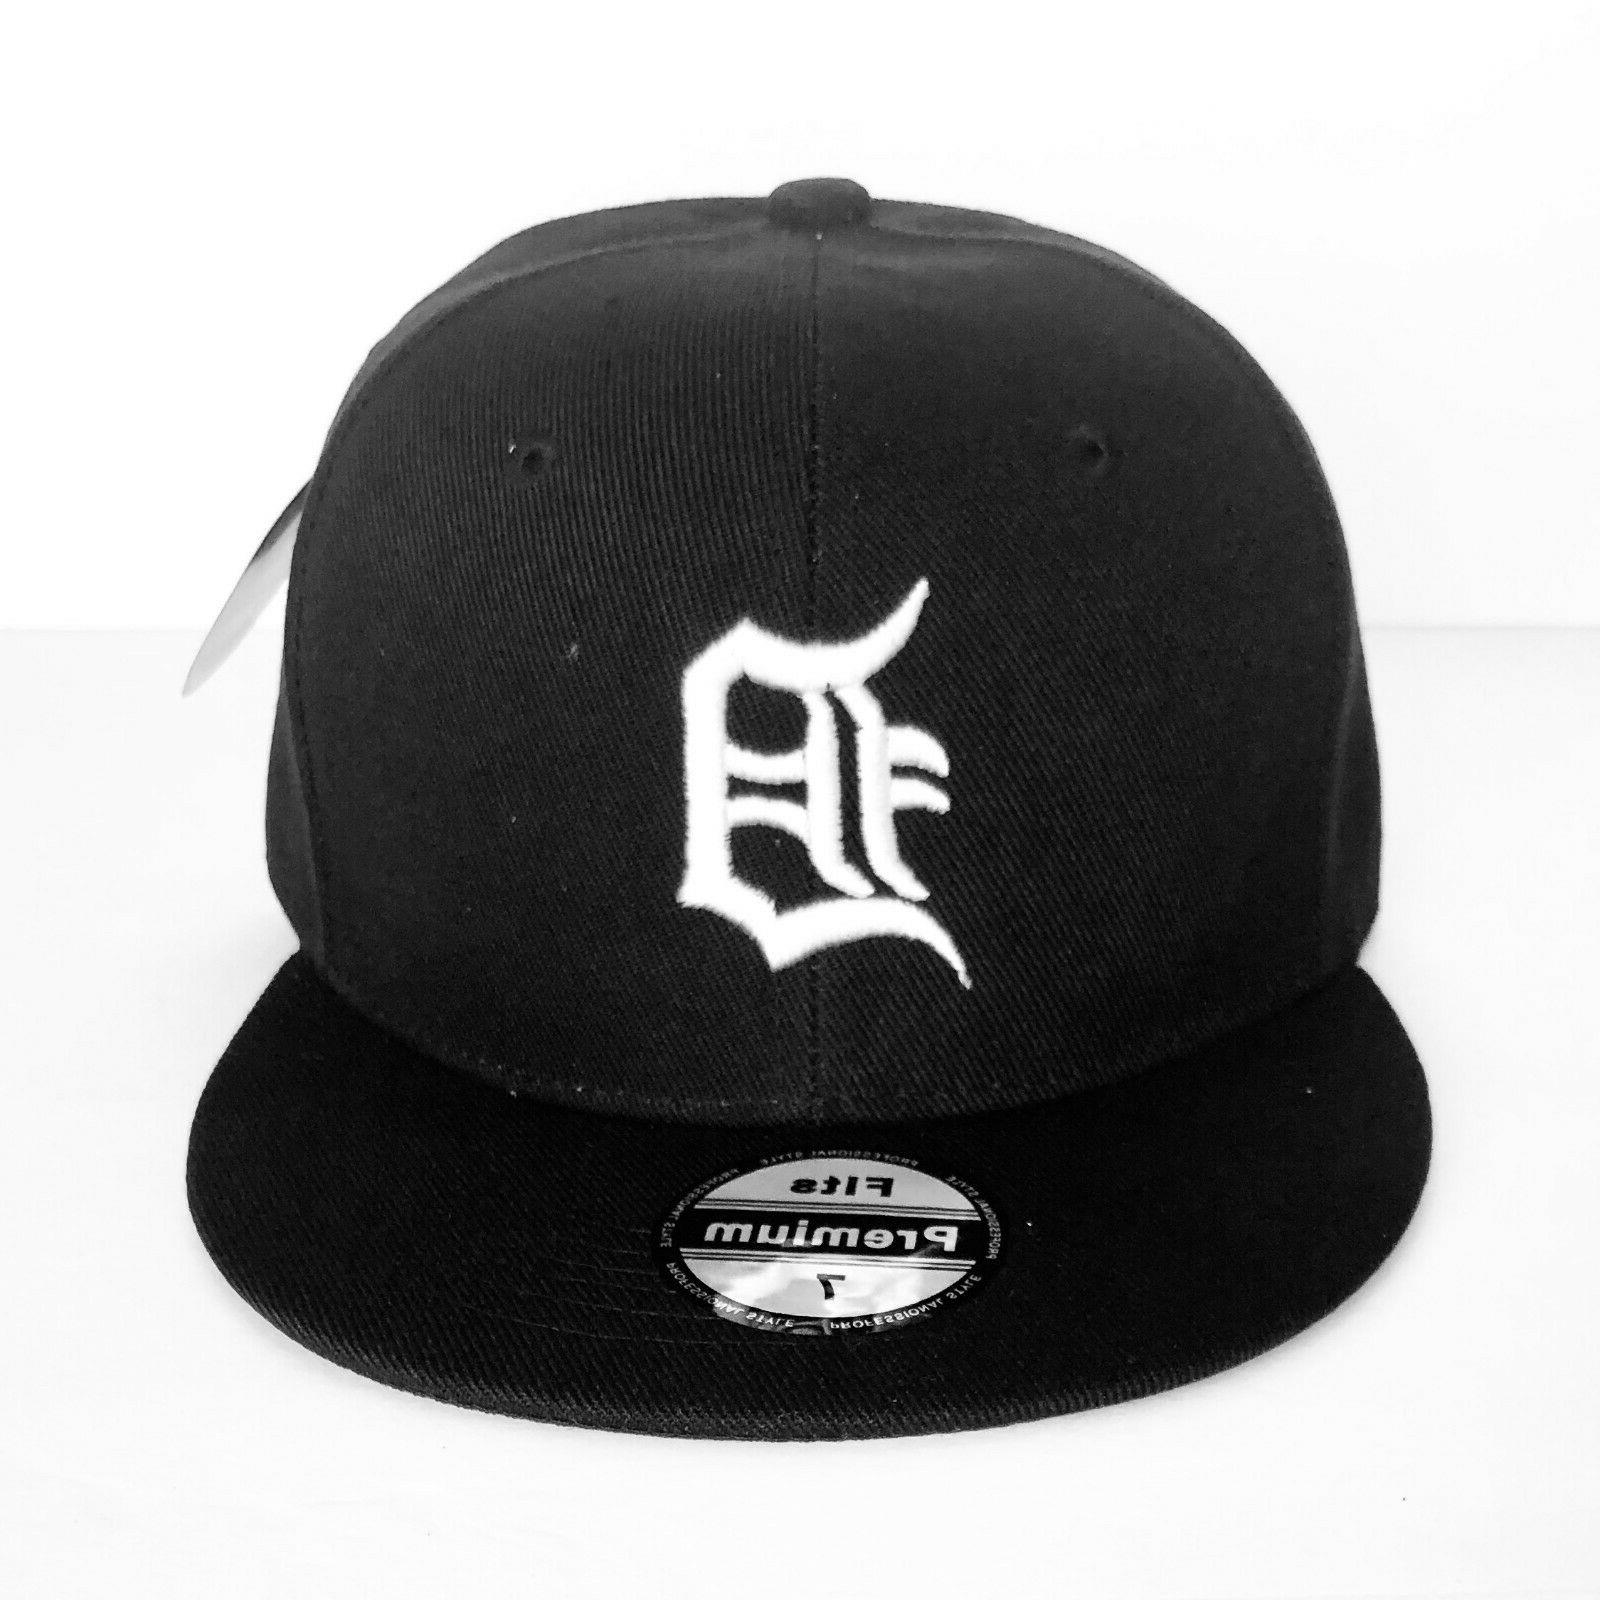 new mens detroit tigers baseball cap fitted